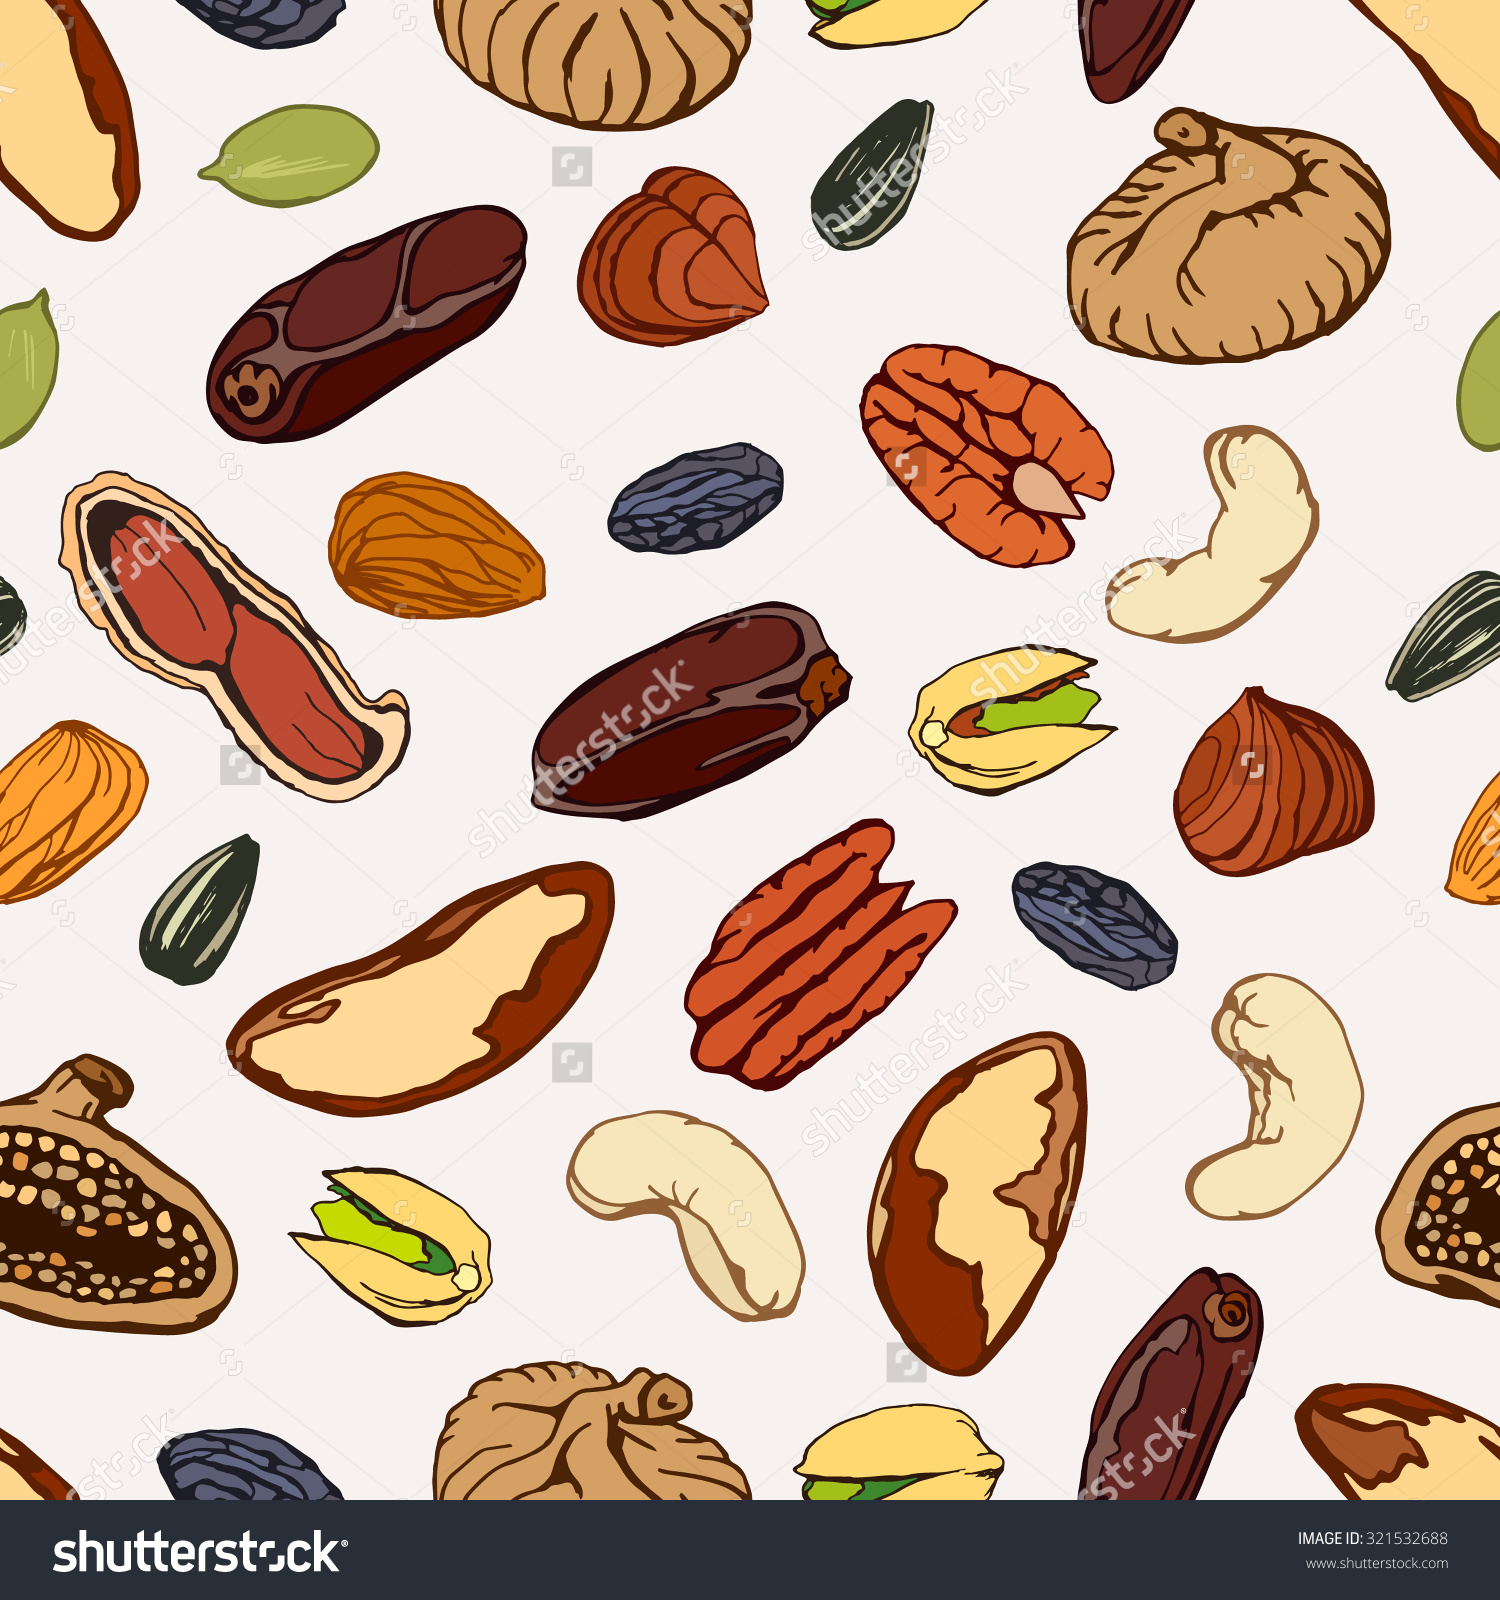 Nut fruit clipground seeds. Beans clipart nuts